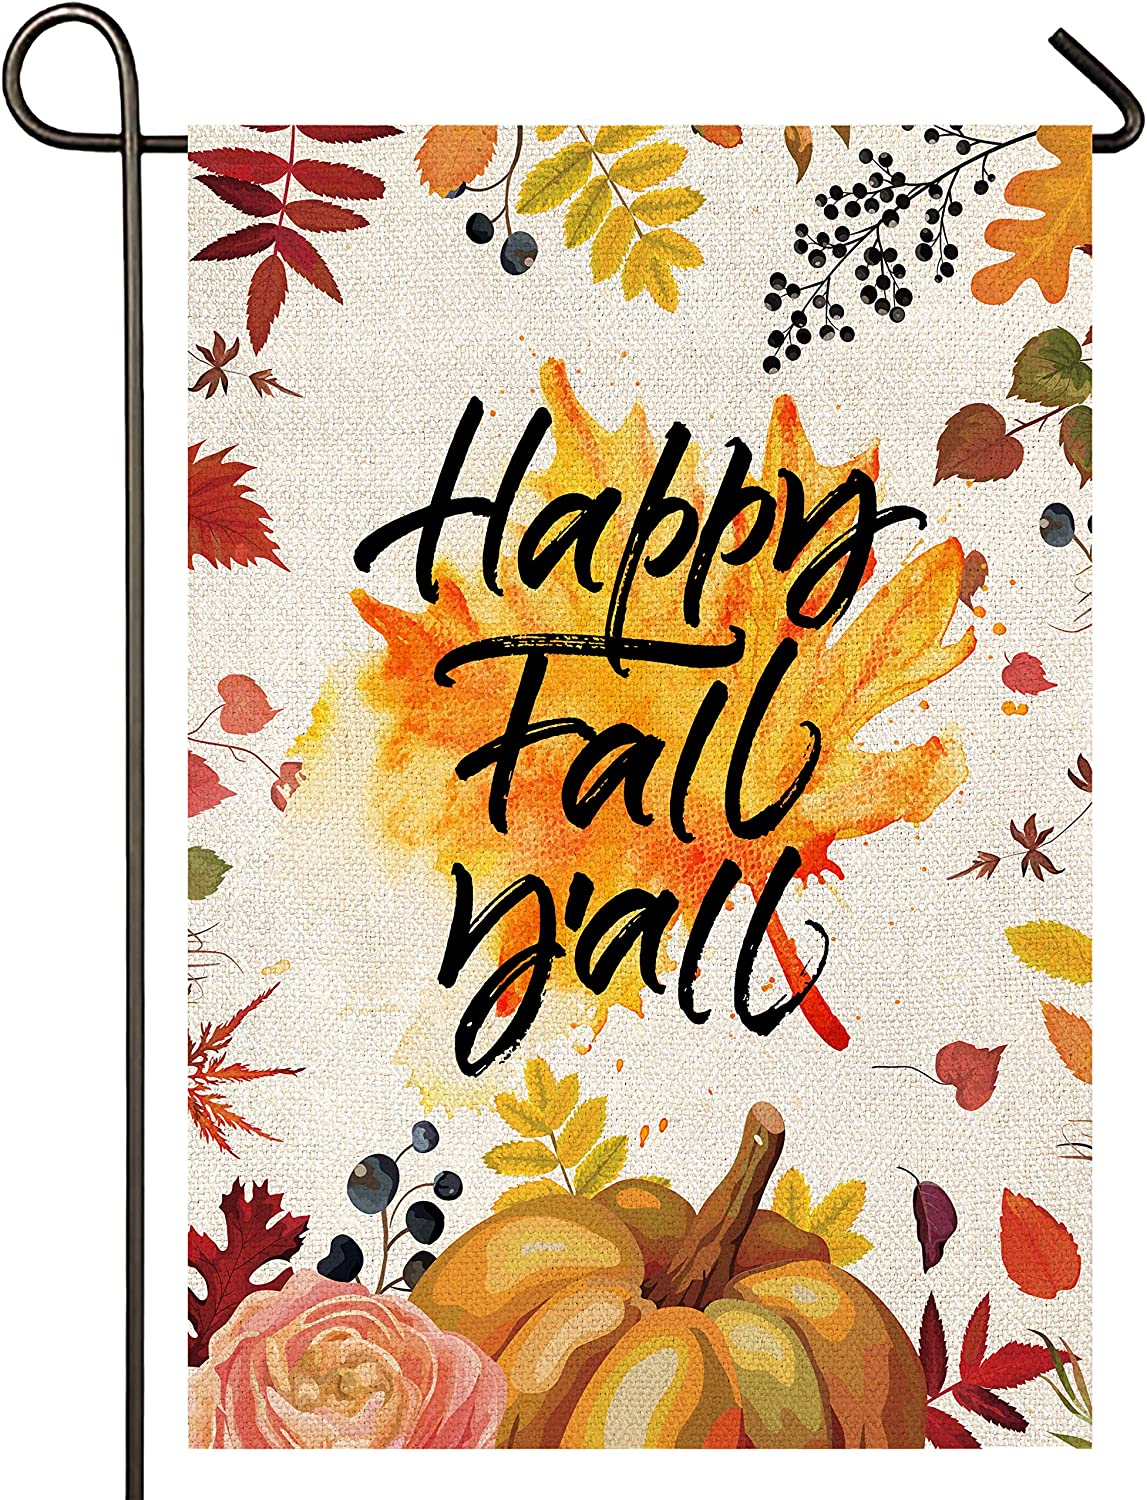 Atenia Happy Fall Yall Pumpkin Burlap Garden Flag, Double Sided Pumpkin Garden Outdoor Autumn Yard Flags (Garden Size - 12.5X18)